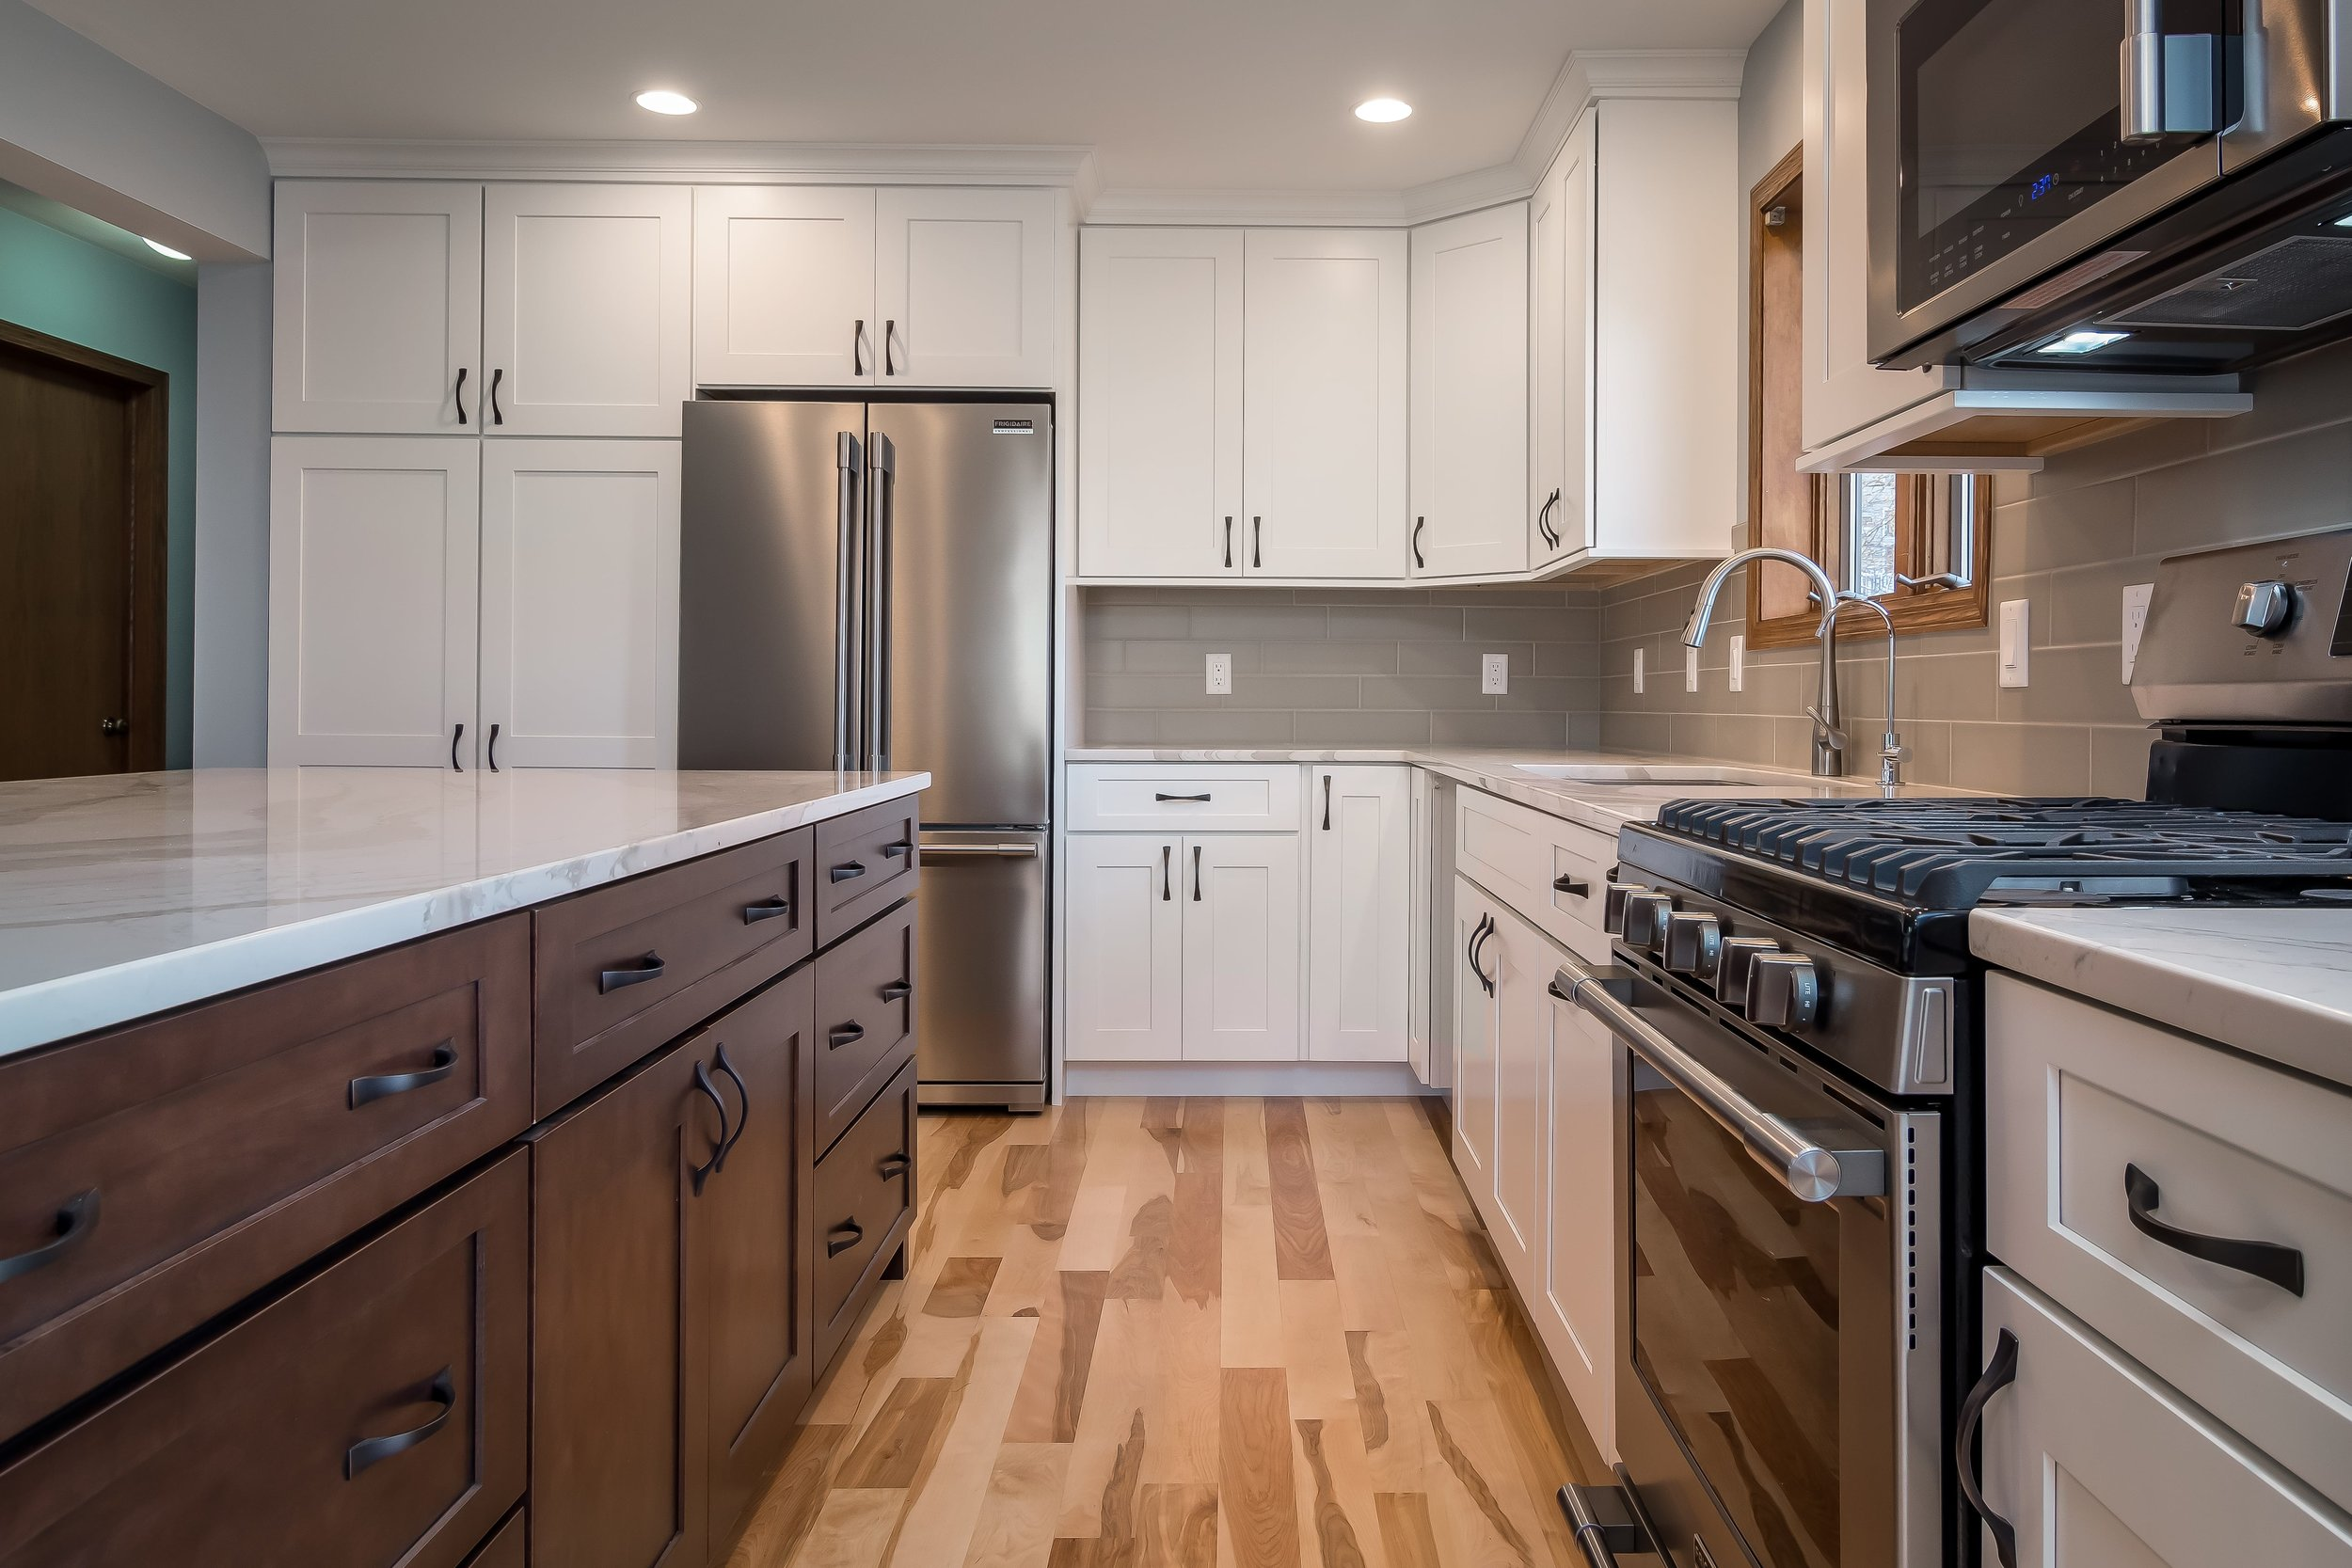 kitchen-remodel-makover-hardwood-white-gray-cottage-grove-wi-4-min.jpg